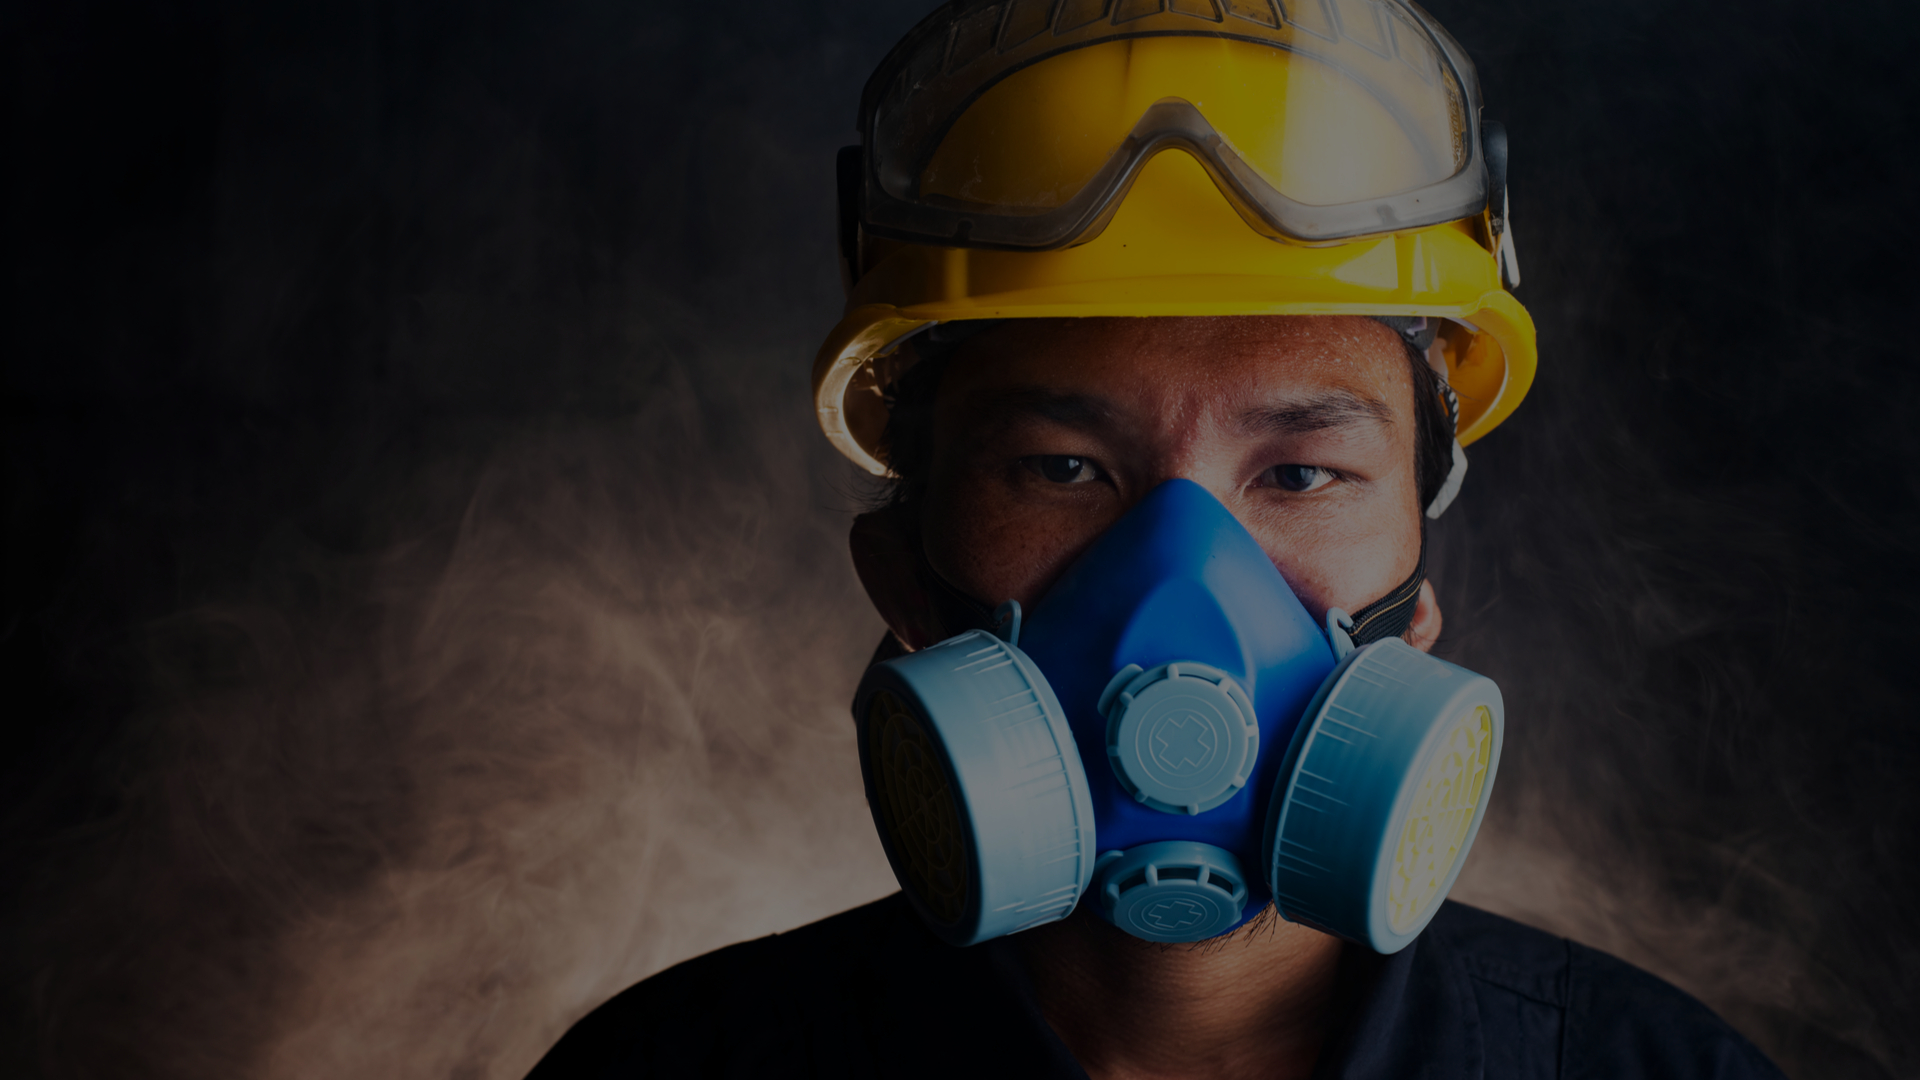 RPE: Do I Need to Wear a Mask In the Workplace?